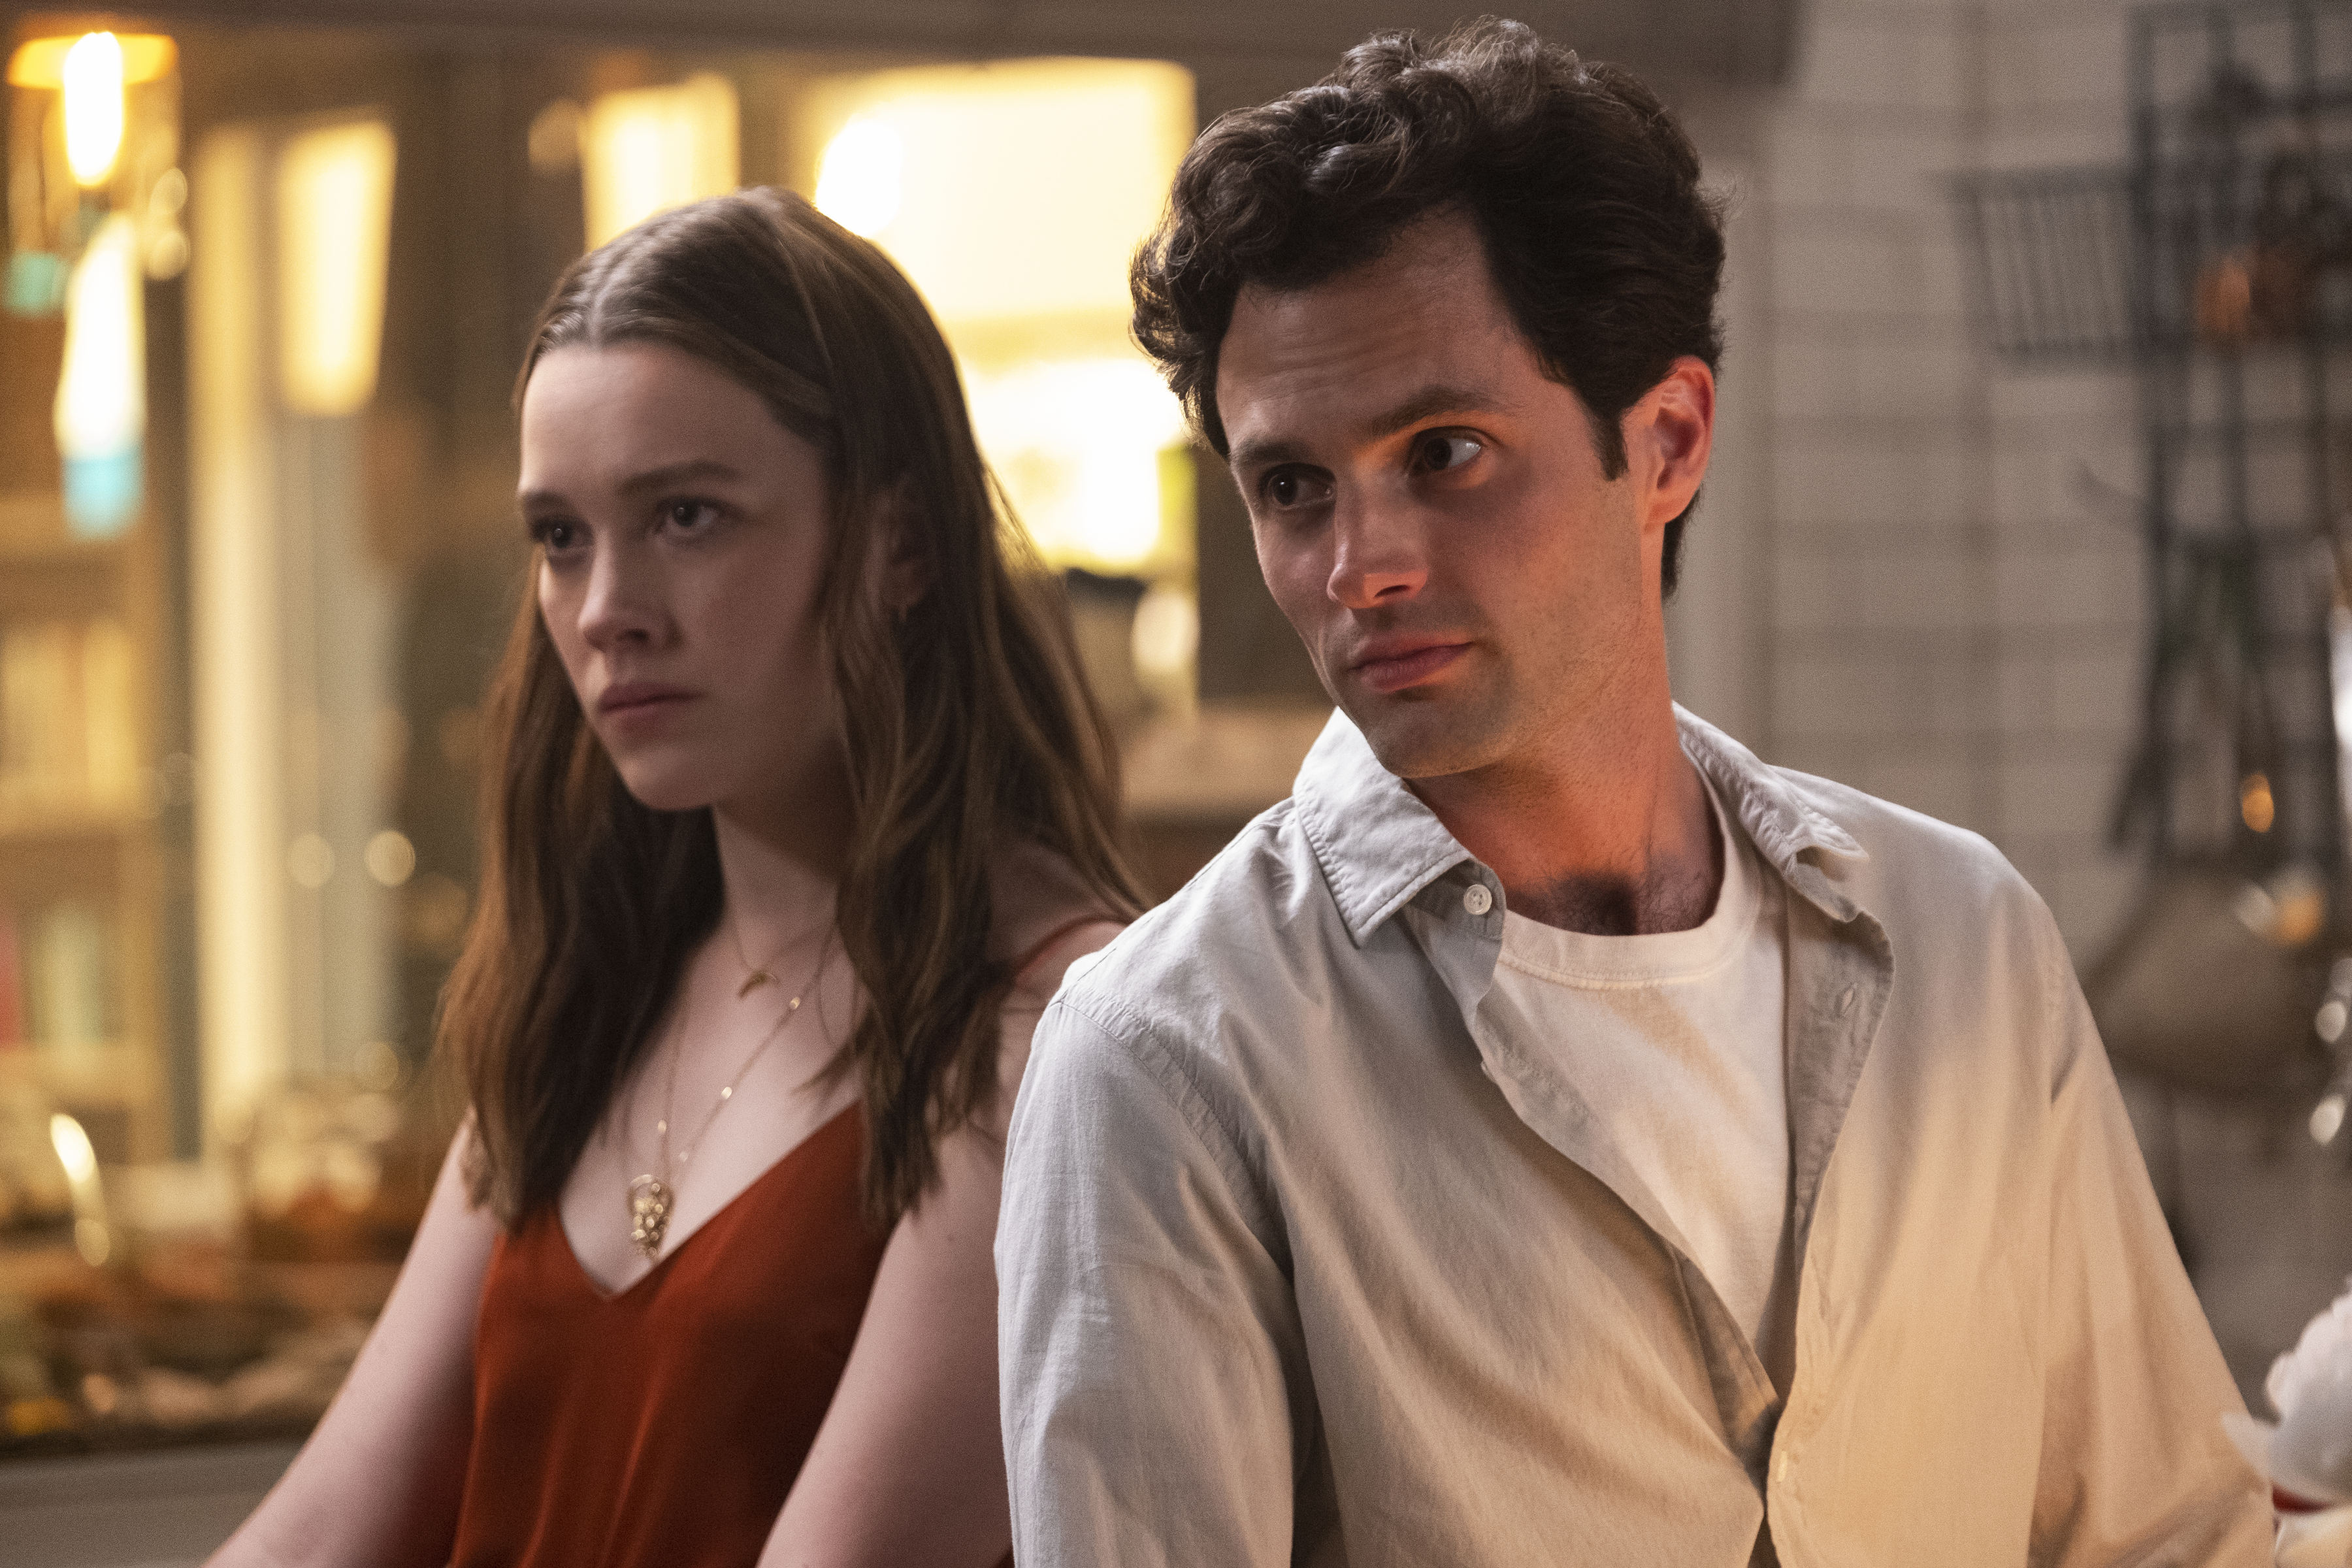 Victoria Pedretti and Penn Badgley star as Love and Joe, a white couple standing together in a kitchen, in You